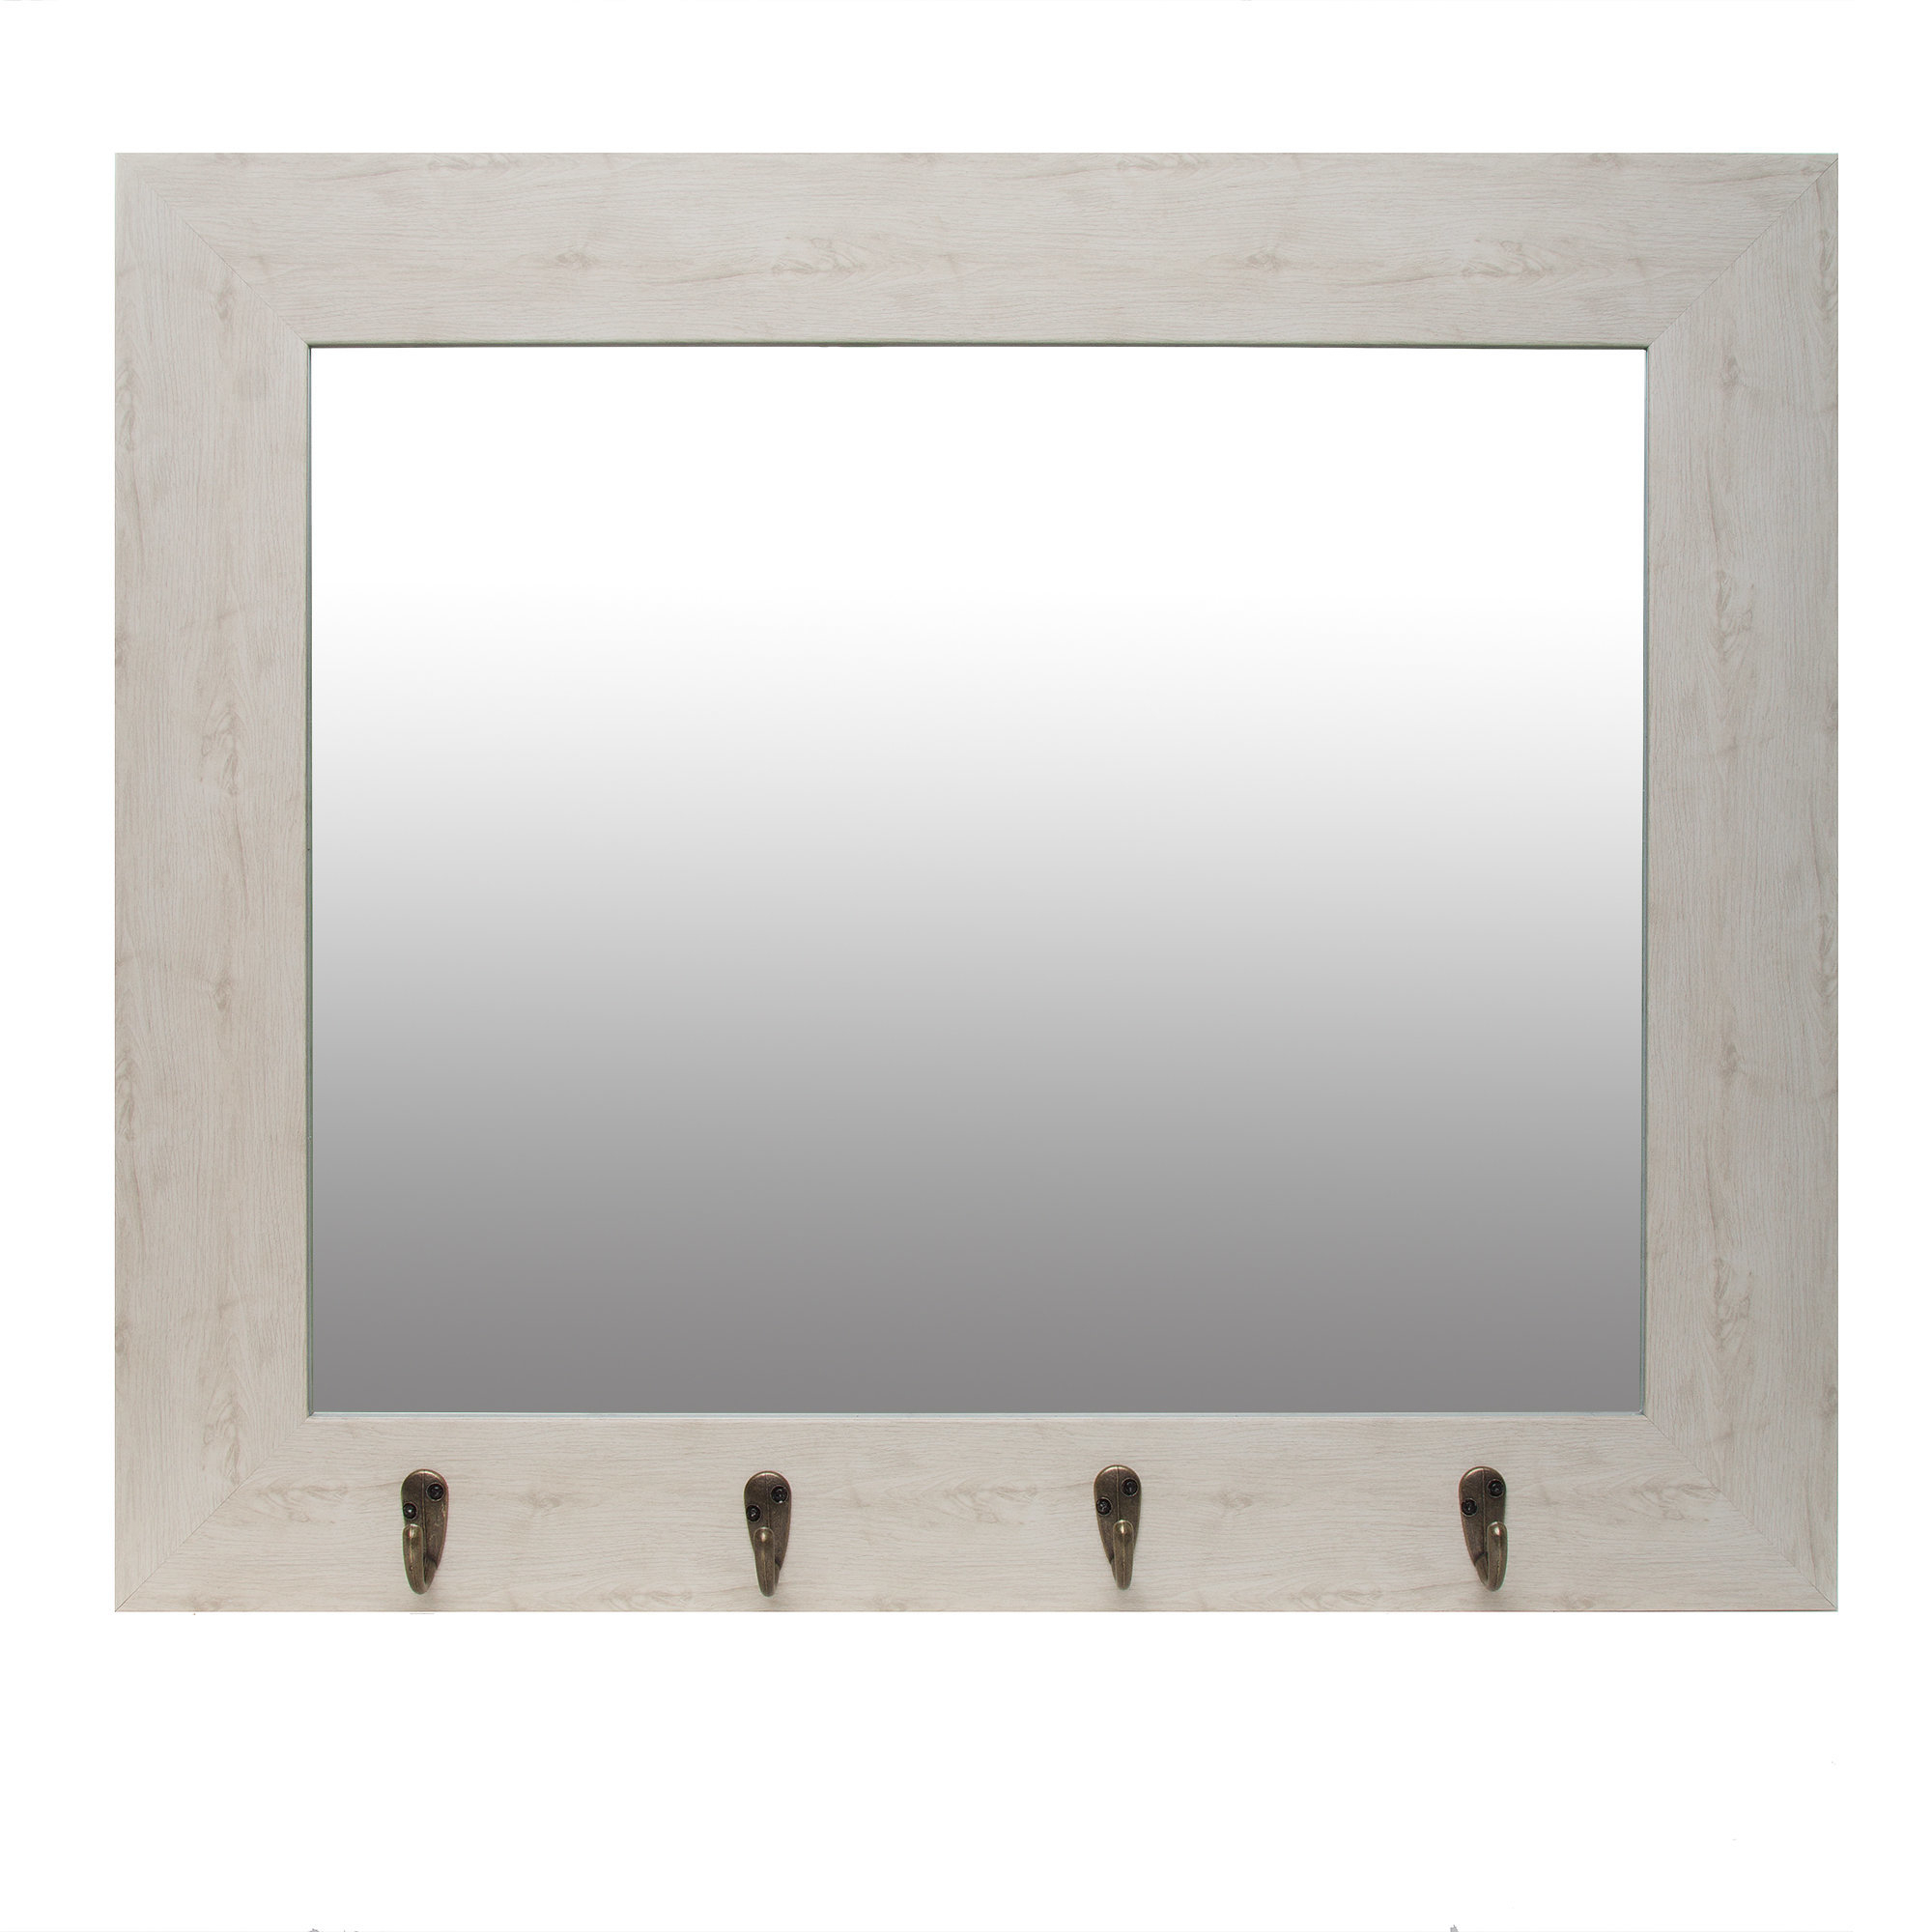 Newest Townson Washed Rustic Accent Mirror With Longwood Rustic Beveled Accent Mirrors (Gallery 9 of 20)